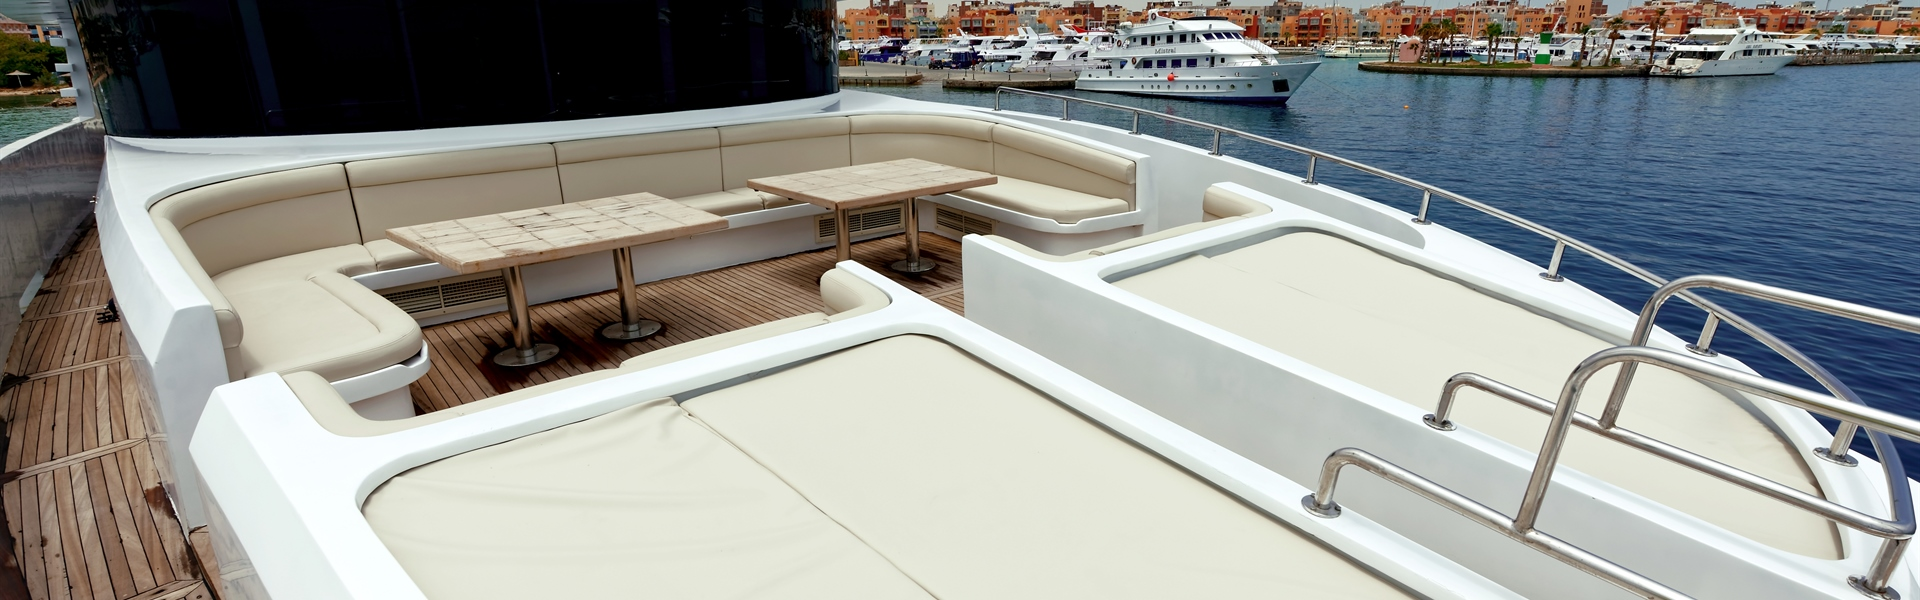 Top Deck Seating